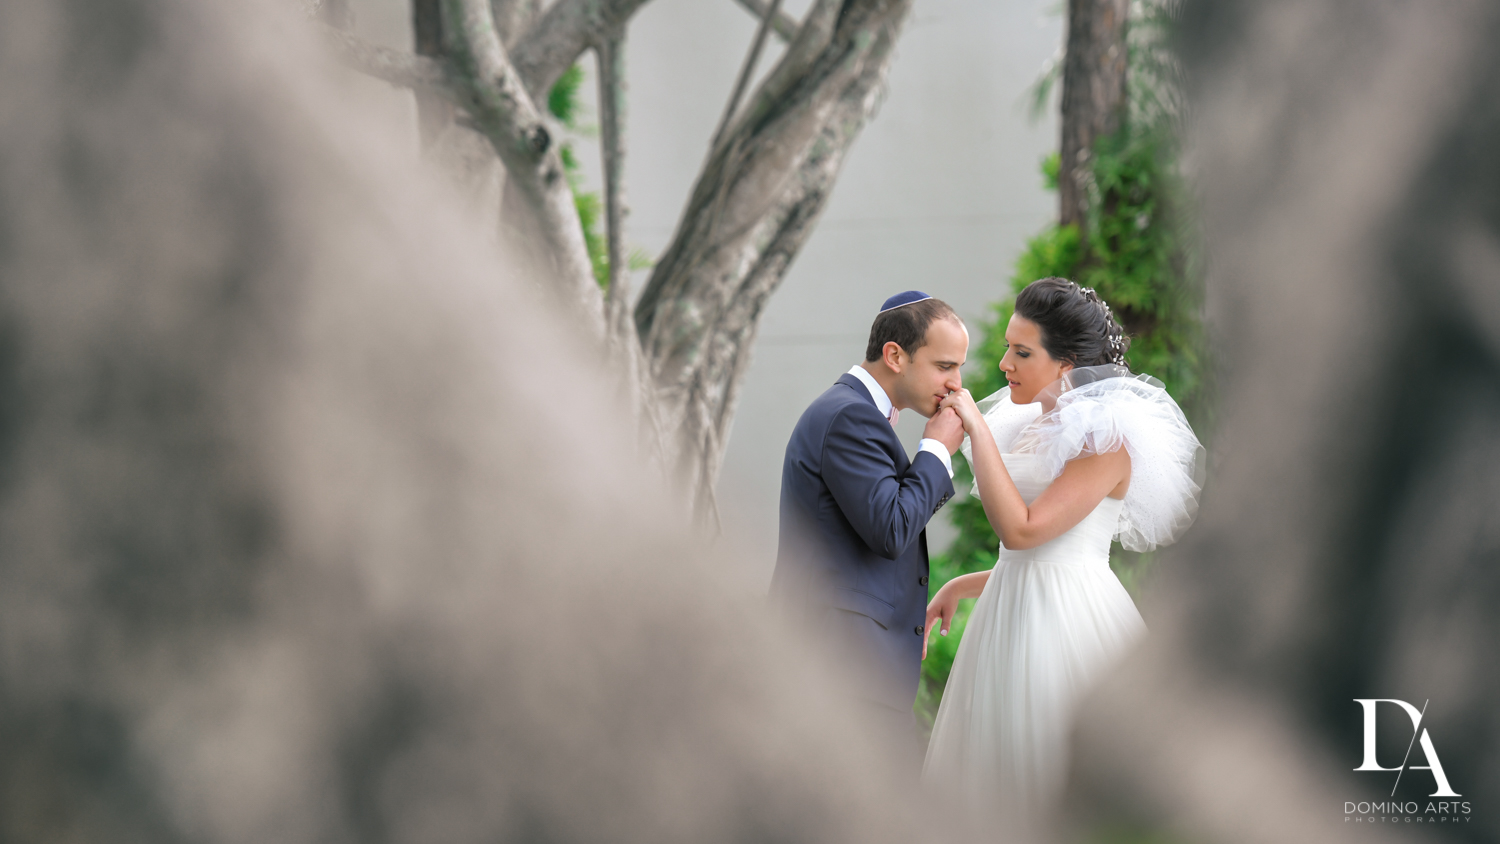 romantic bride and groom at Fairy-Tale Wedding at BNai Torah Boca Raton by Domino Arts Photography